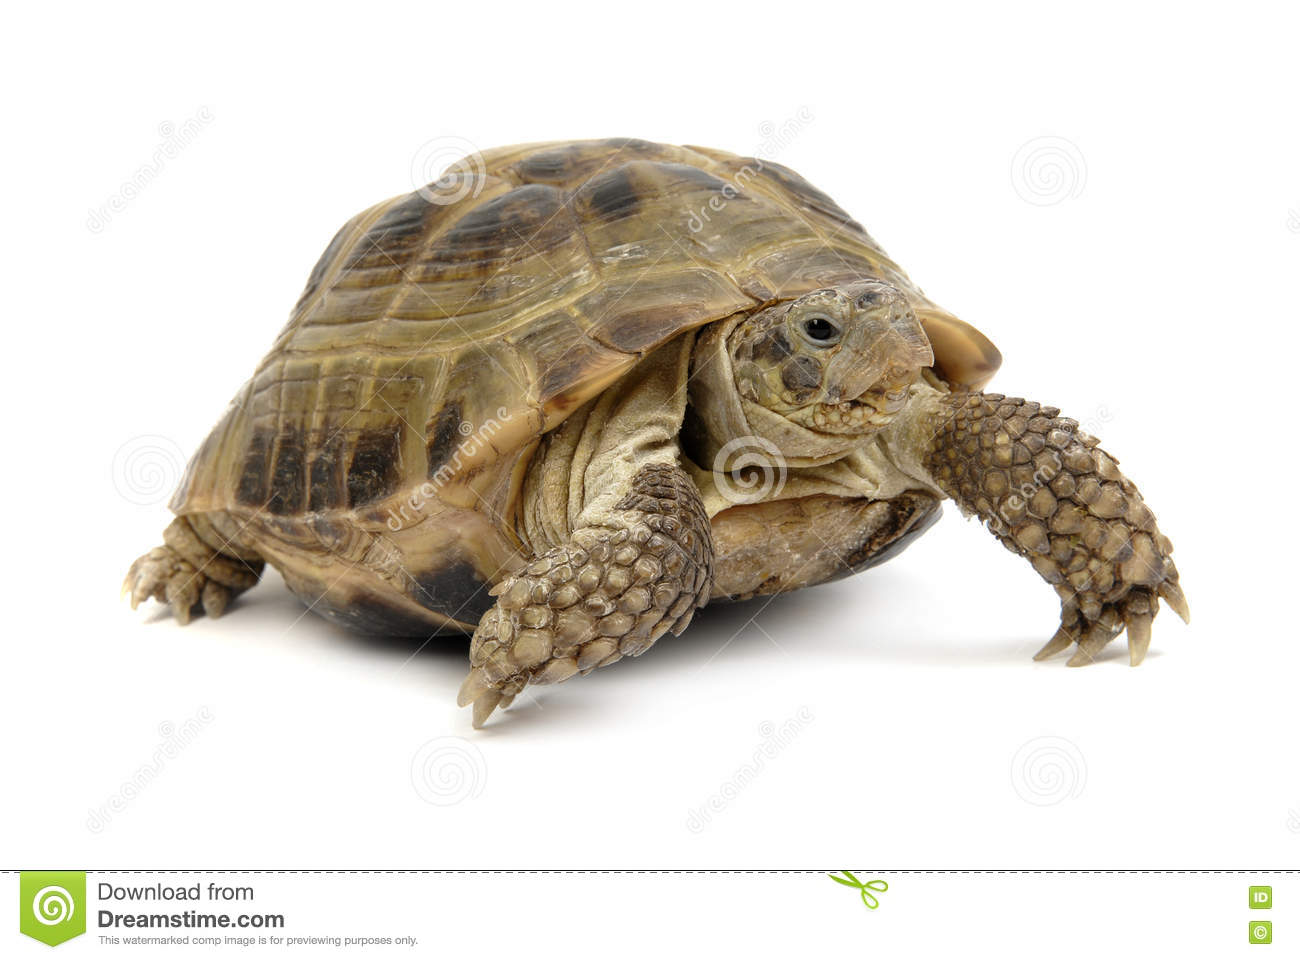 Crawling tortoise on a white background